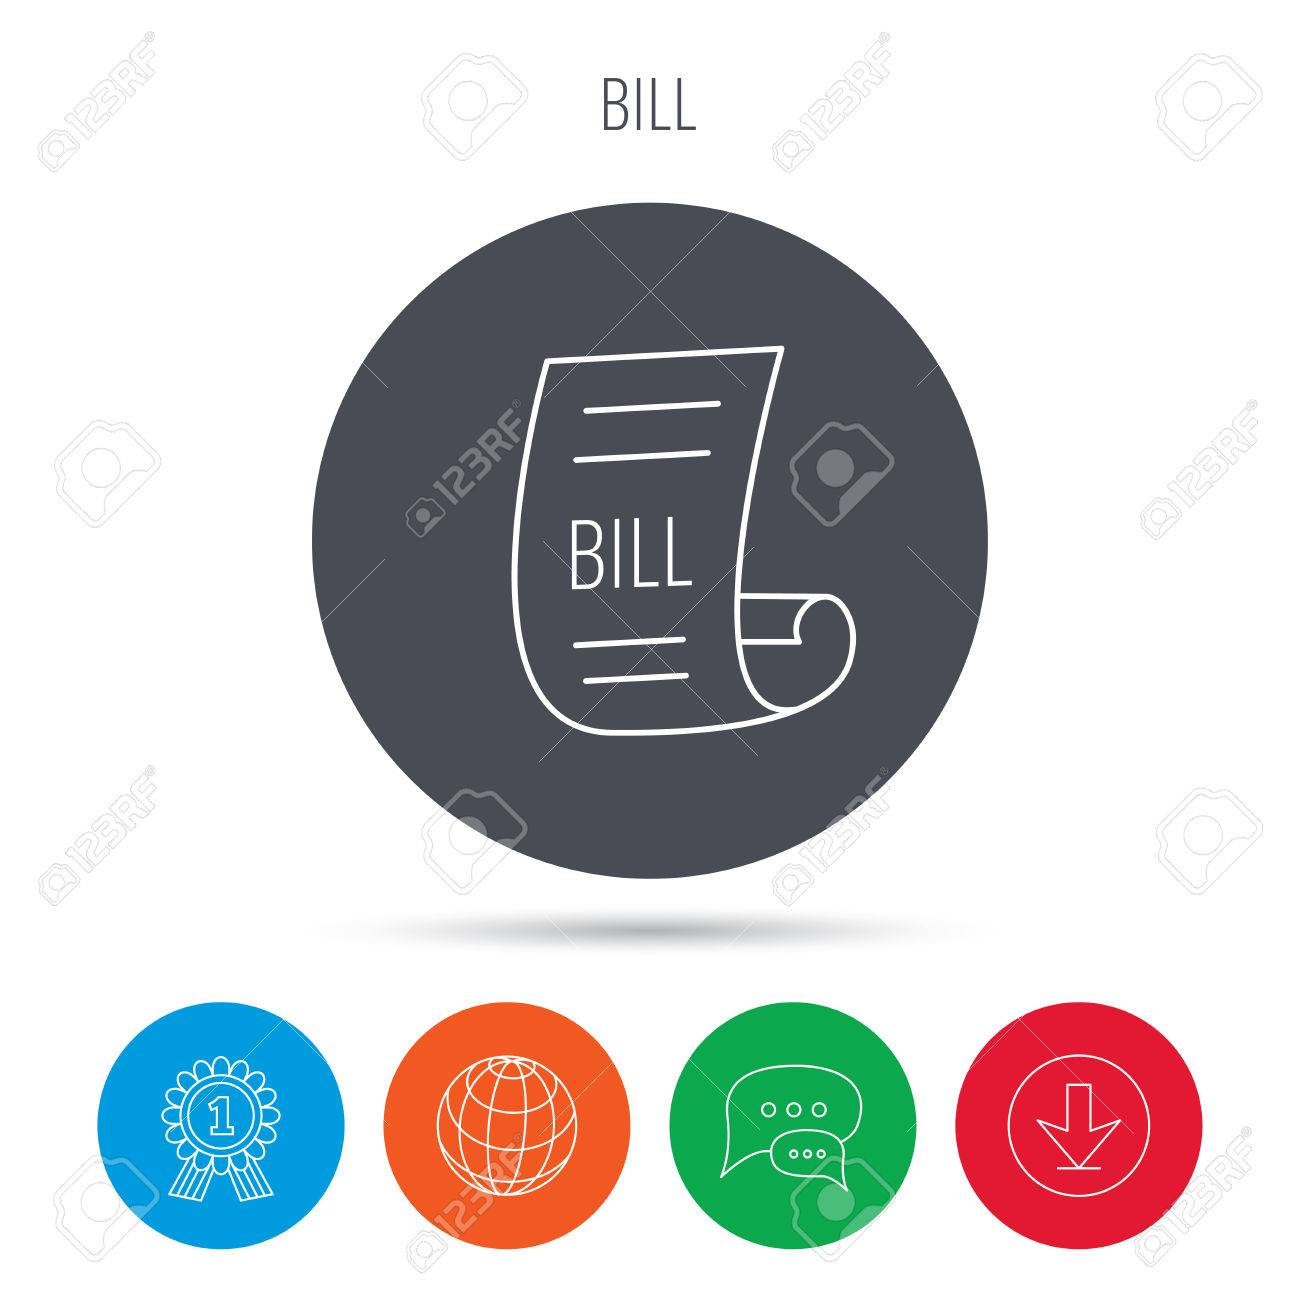 Calculator With Receipt Excel Bill Icon Pay Document Sign Business Invoice Or Receipt Symbol  Honda Crv Invoice Pdf with Reconcile Invoices Pdf Pay Document Sign Business Invoice Or Receipt Symbol Globe Download Student Fee Receipt Format Pdf